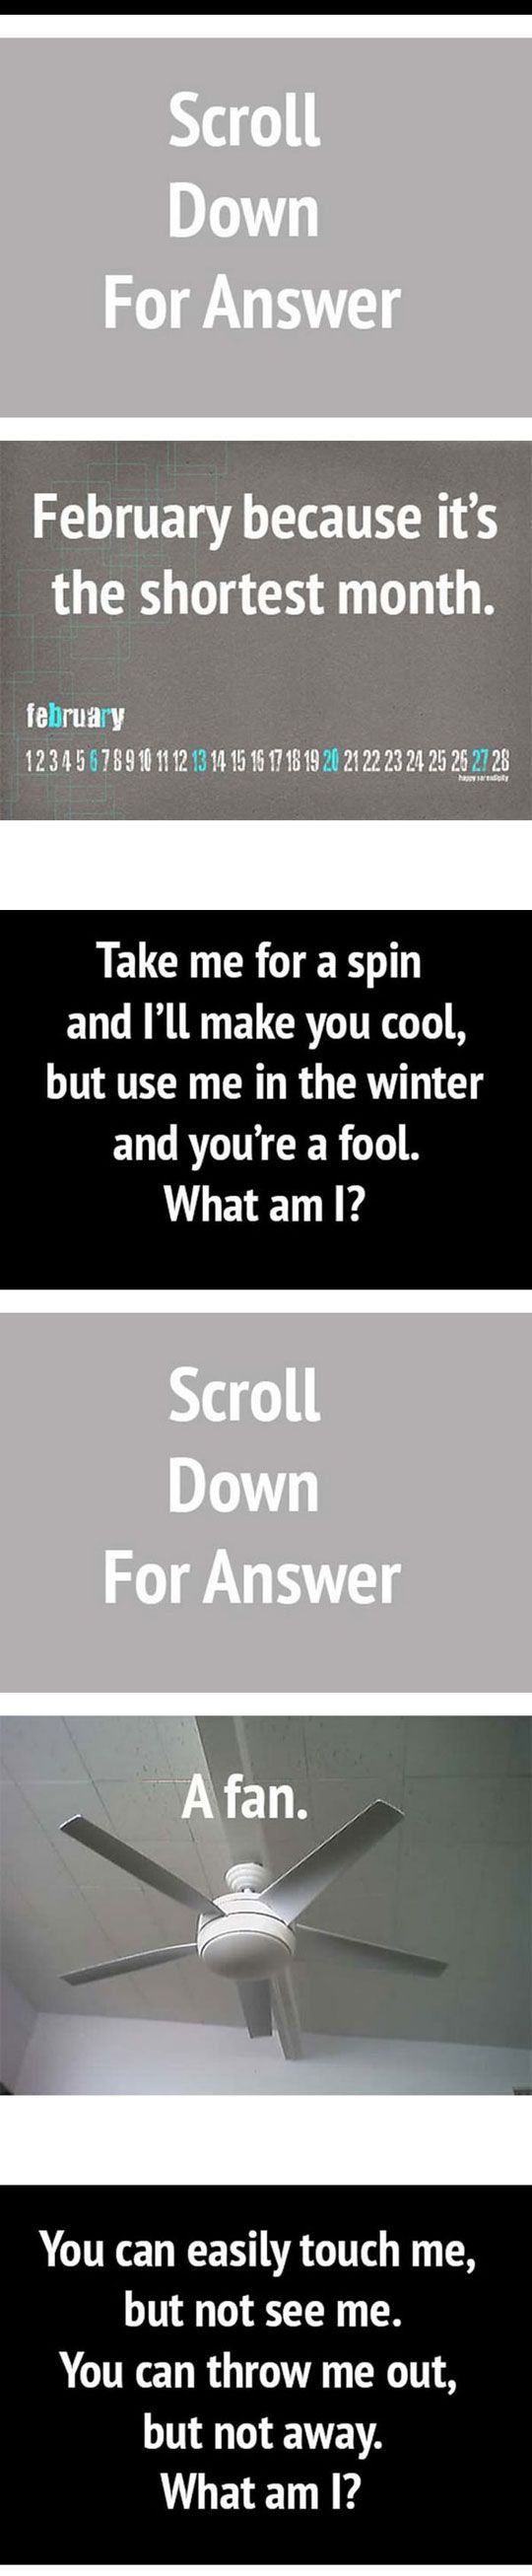 12 Epic Riddles Riddles, Funny riddles, Jokes and riddles